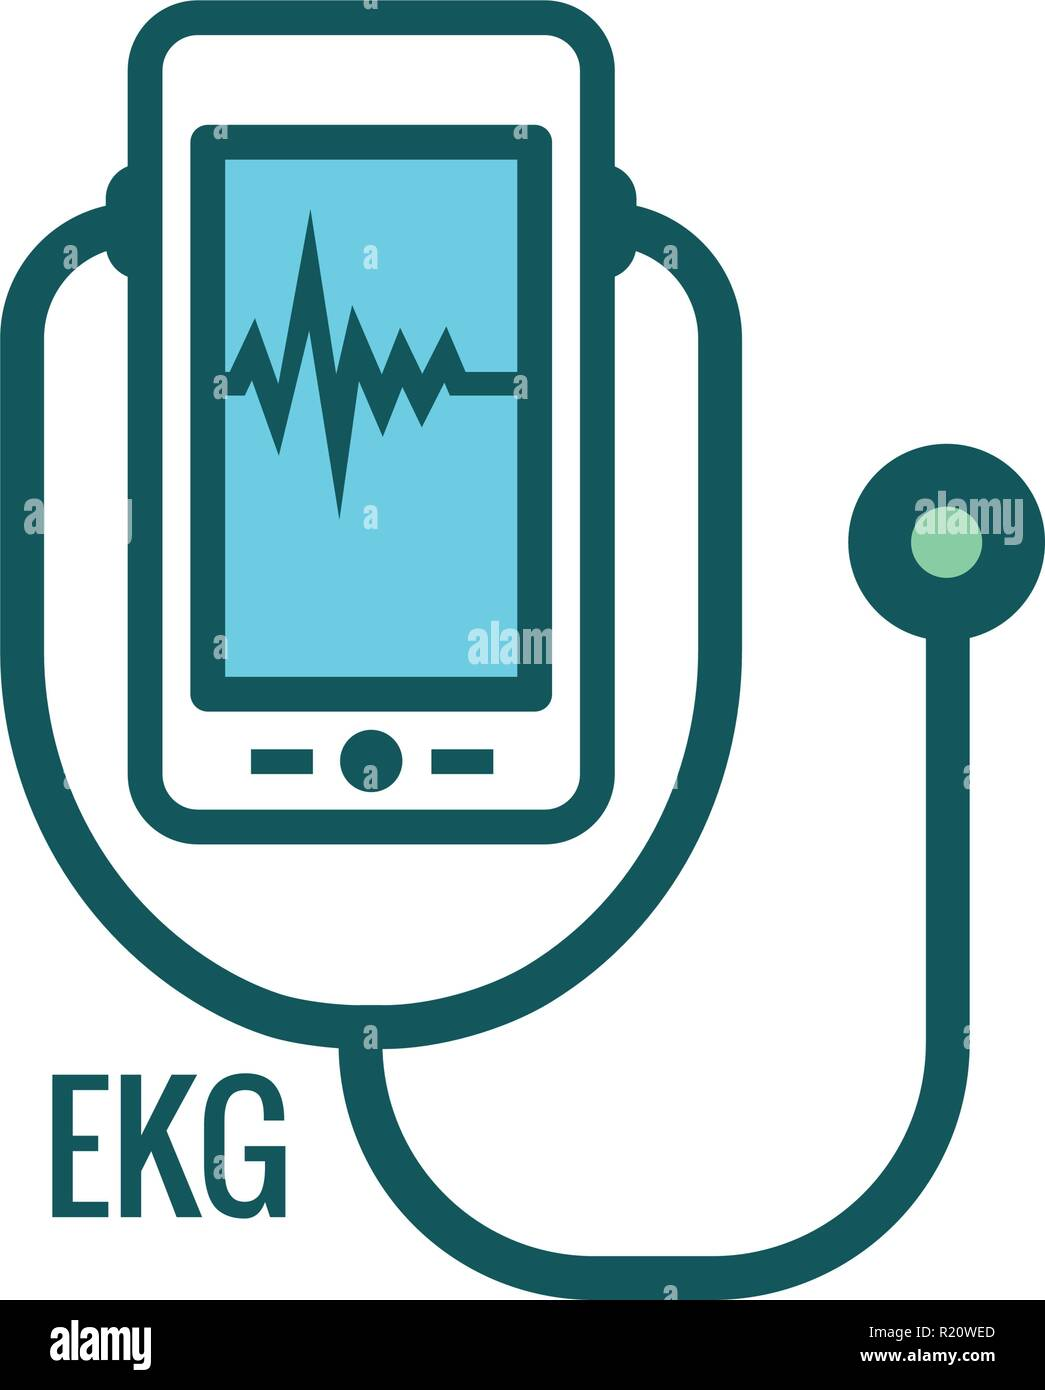 Telemedicine abstract idea - icons illustrating remote health and software - Stock Image